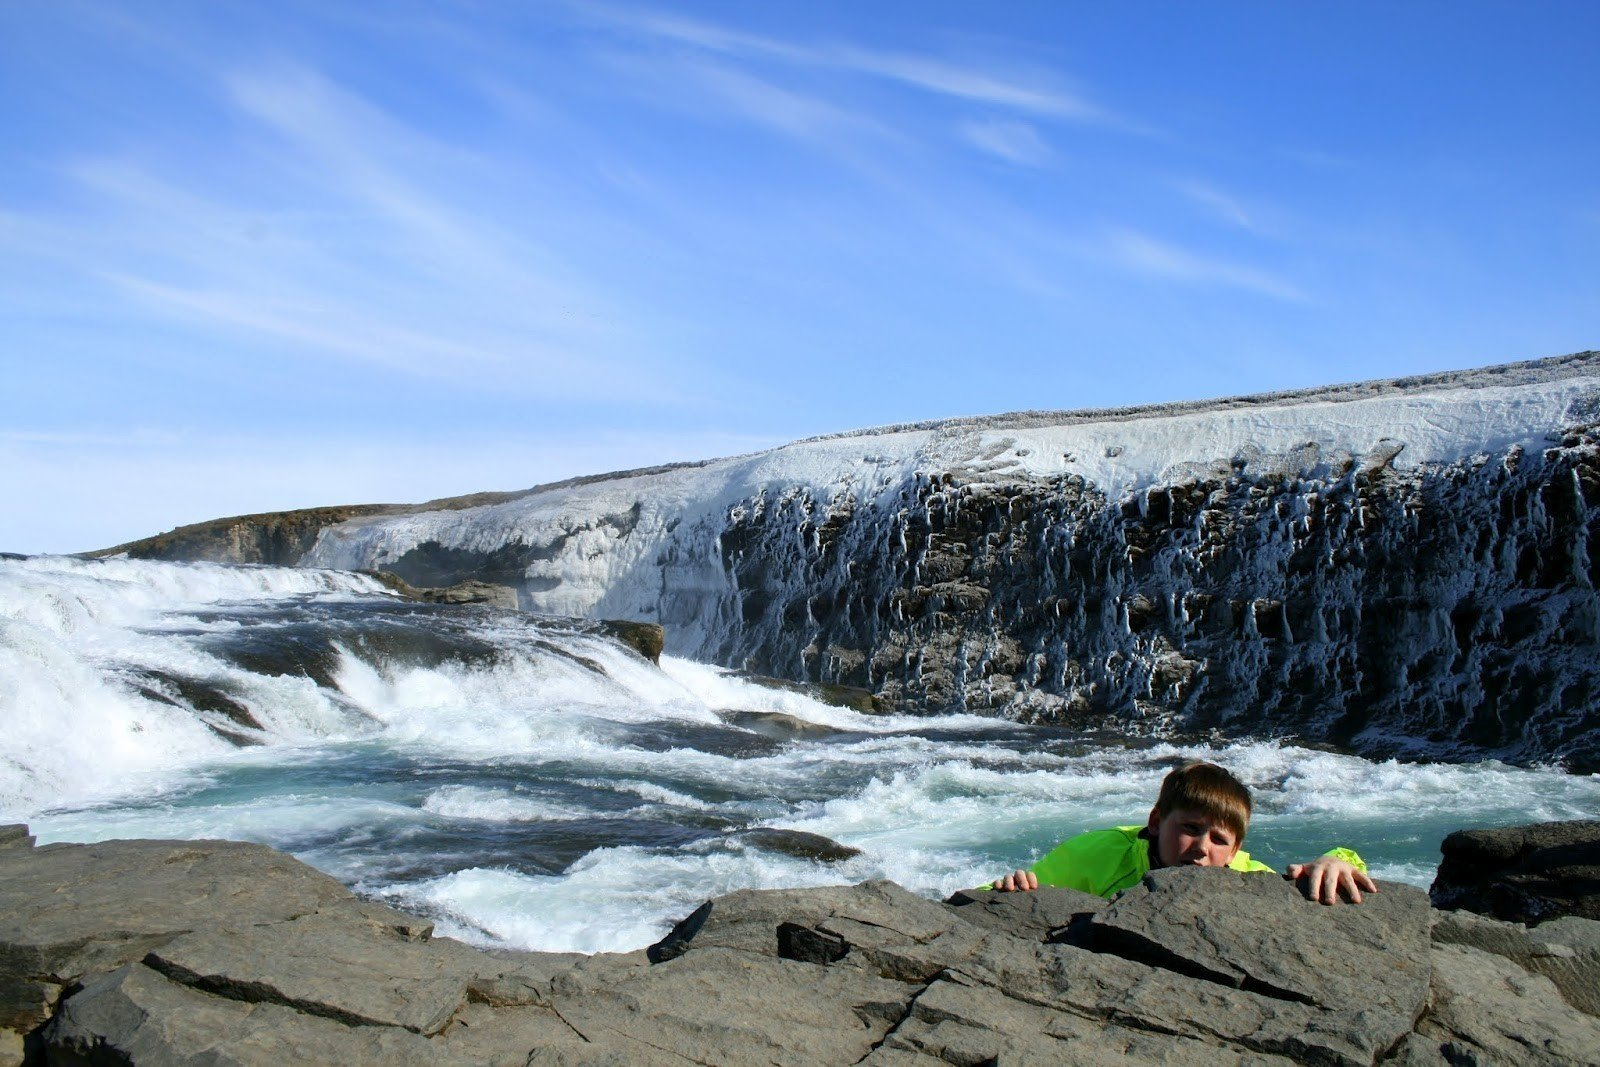 The top section of the Gullfoss Waterfall